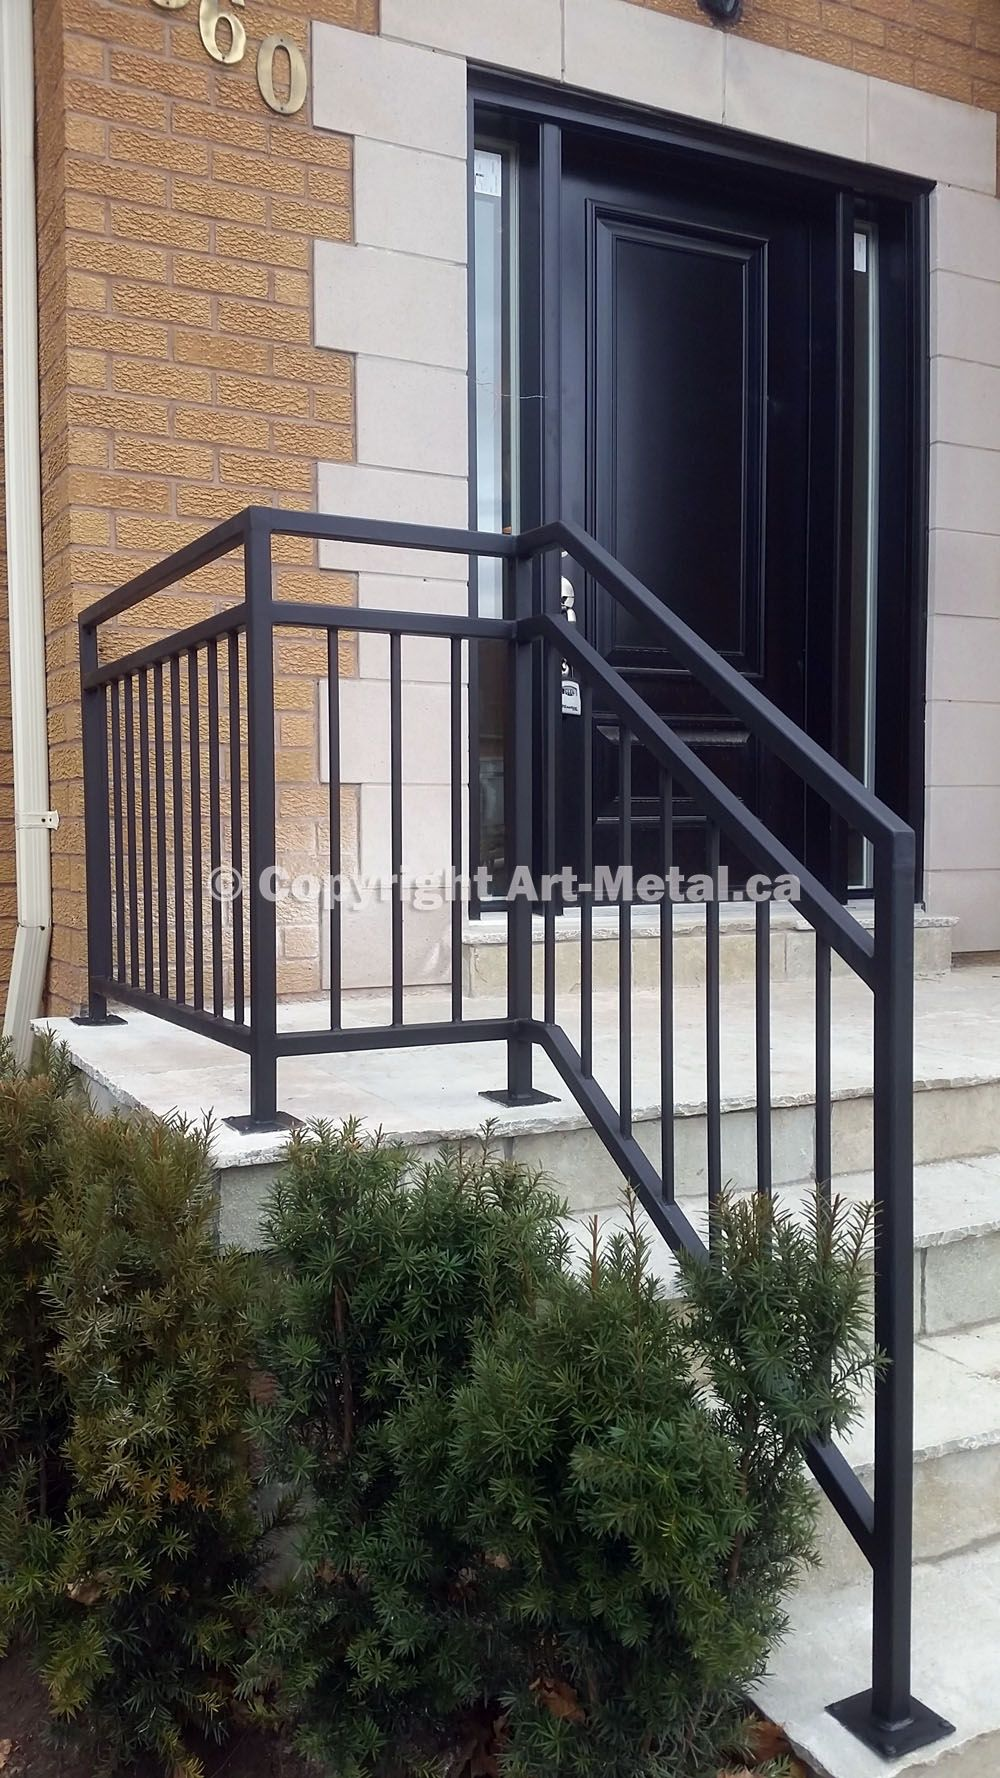 Exterior Railings Handrails For Stairs Porches Decks Outdoor Stair Railing Exterior Stairs Railings Outdoor